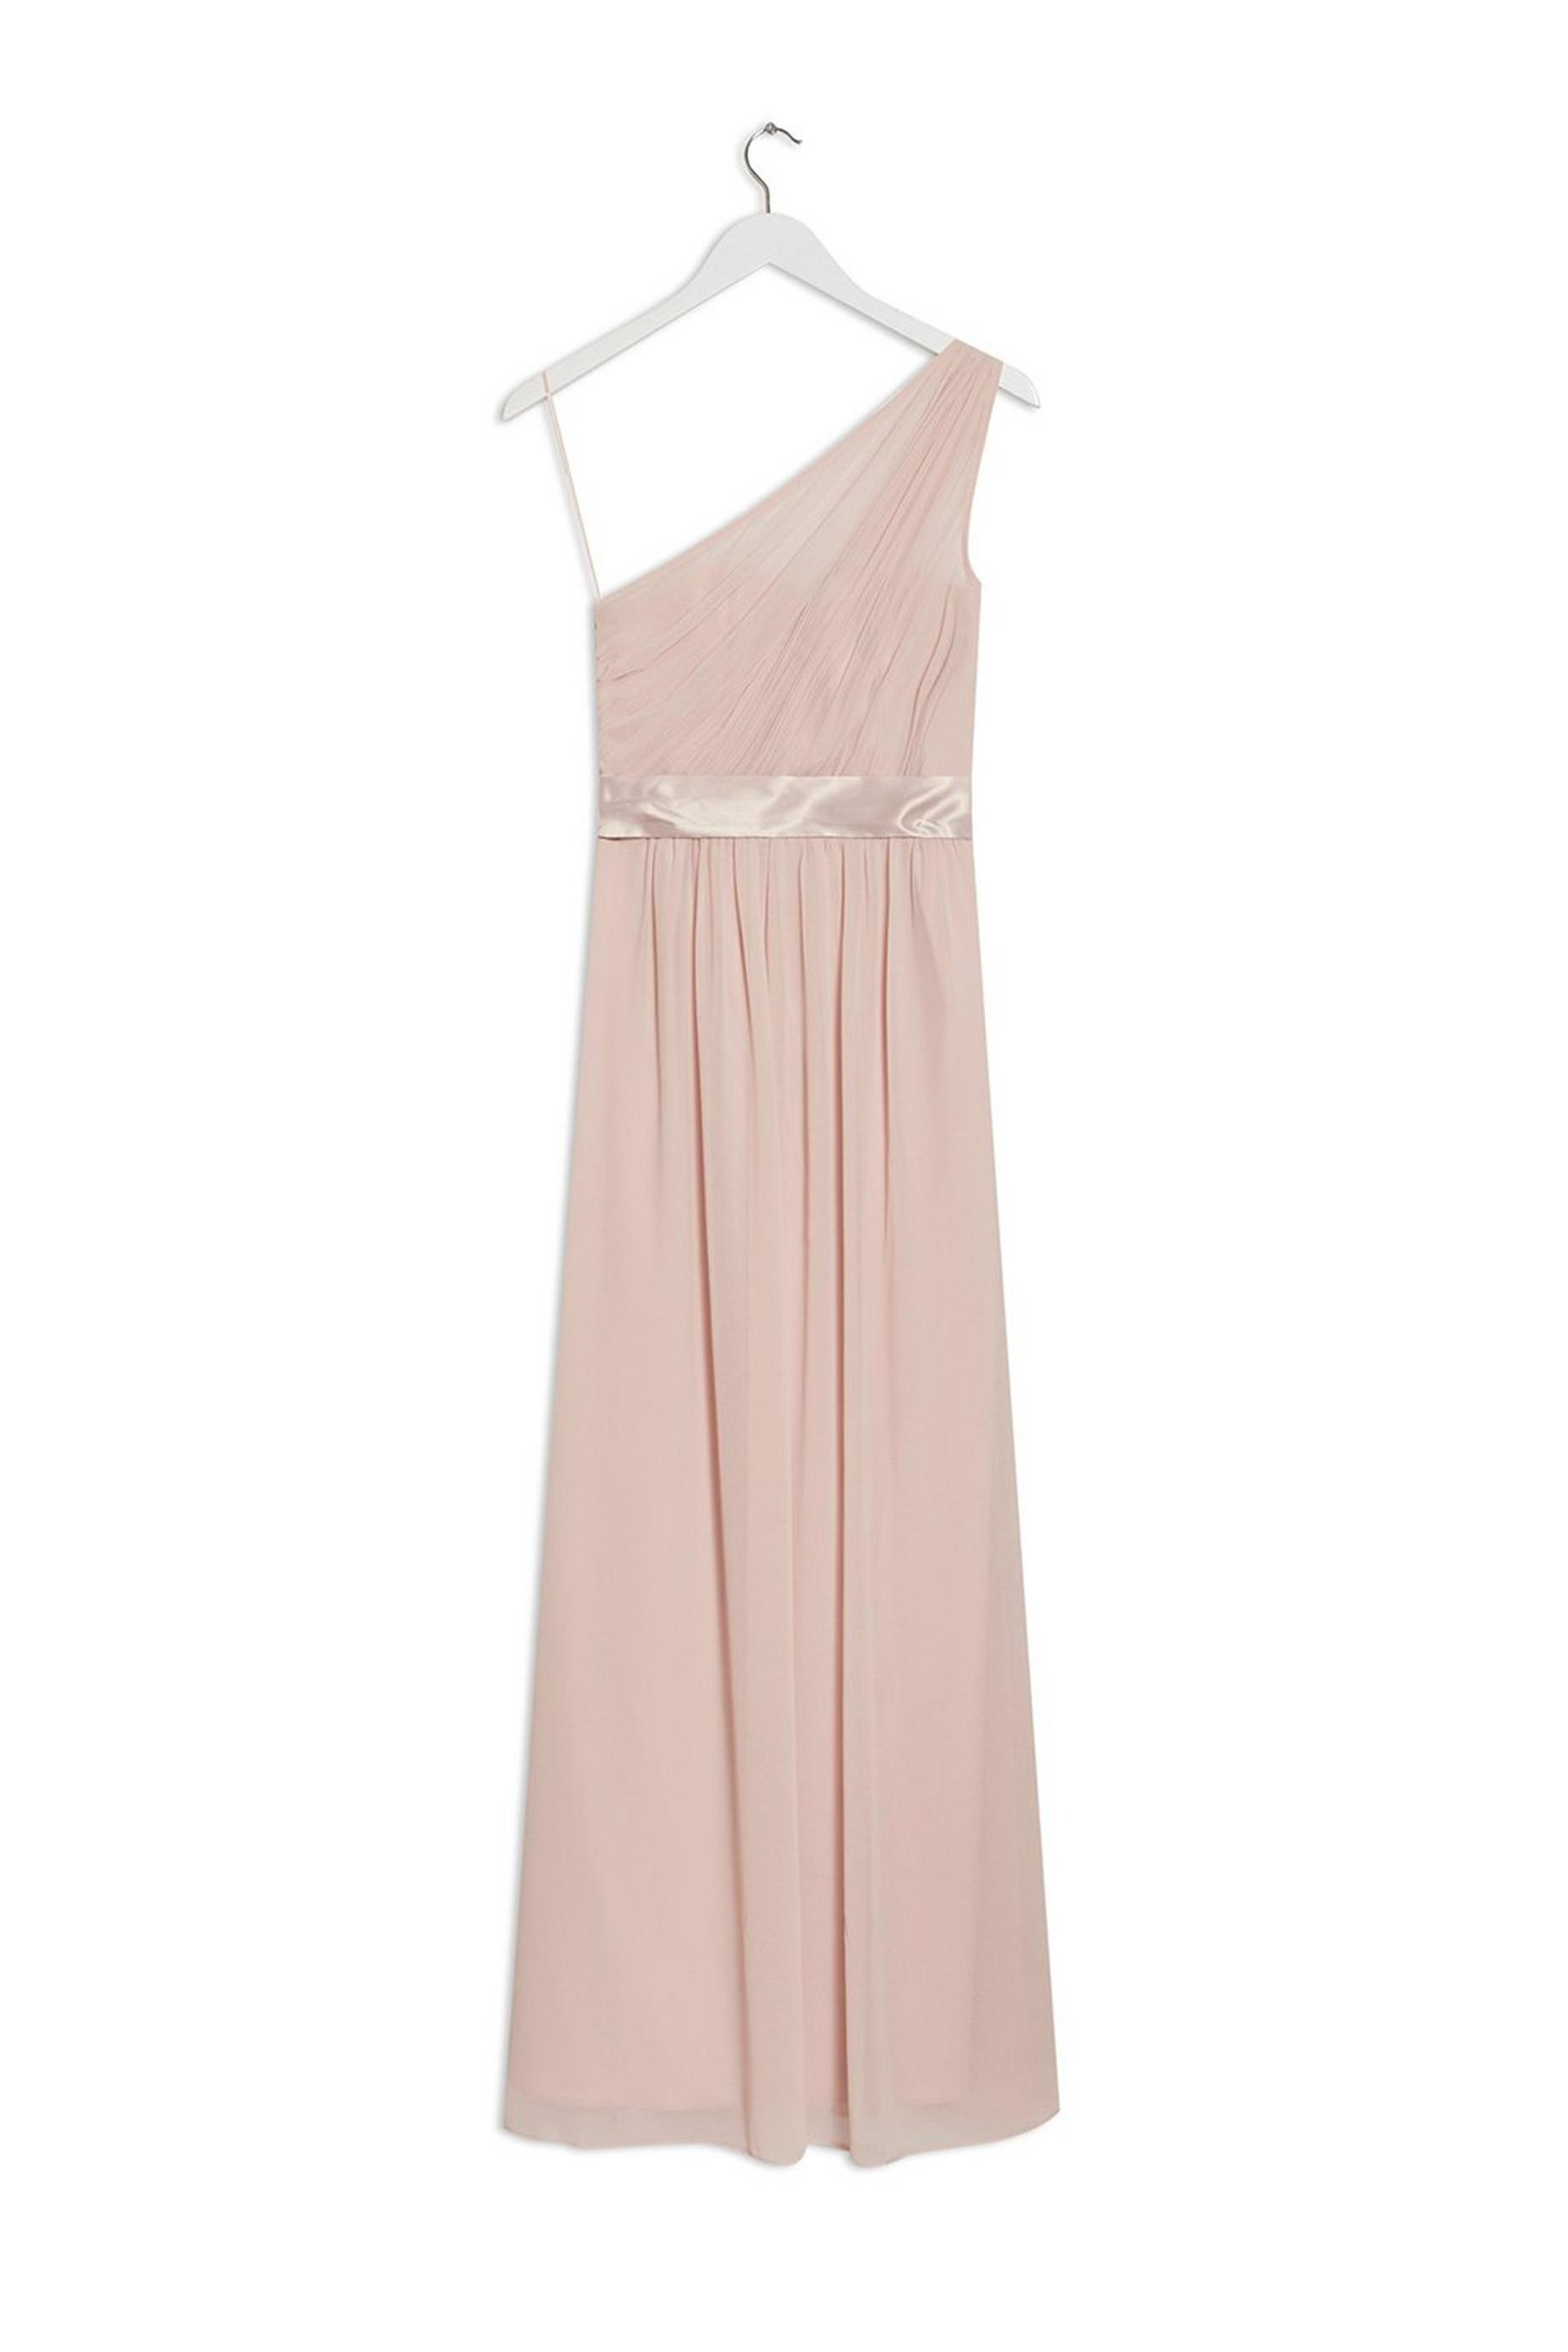 Blush Sadie One Shoulder Maxi Dress